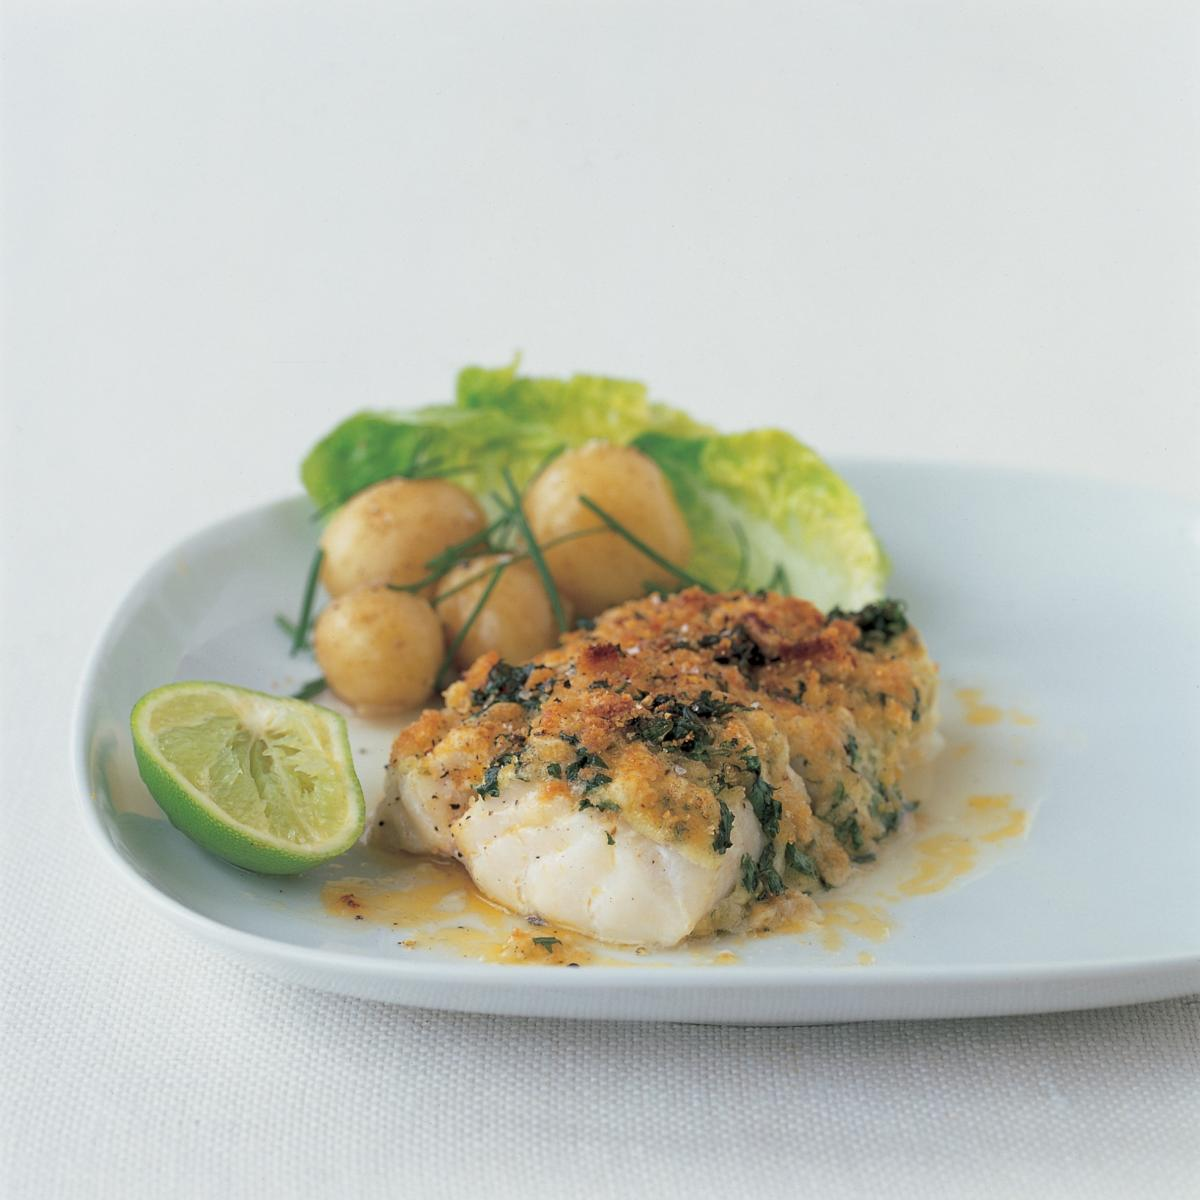 A picture of Delia's Californian Grilled Fish recipe